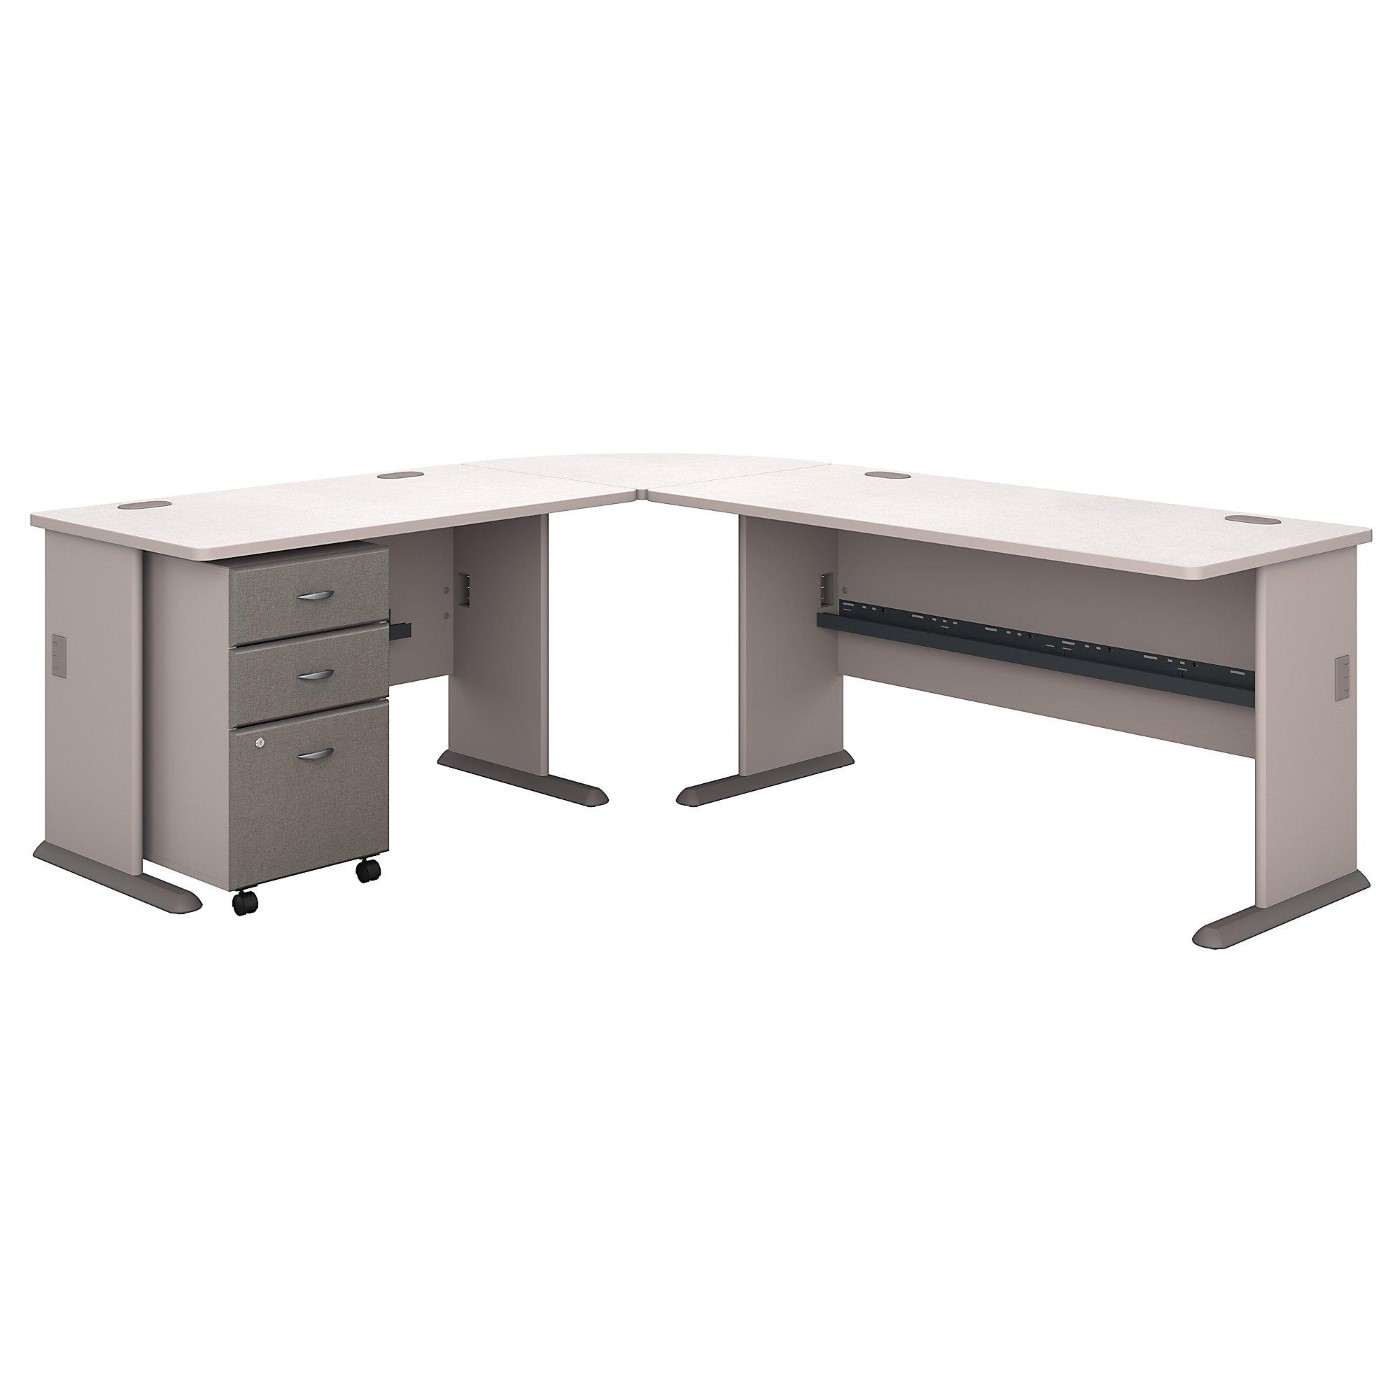 <font color=#c60><b>BUSH BUSINESS FURNITURE SERIES A 87W X 75D L SHAPED DESK WITH MOBILE FILE CABINET. FREE SHIPPING</font></b></font></b>